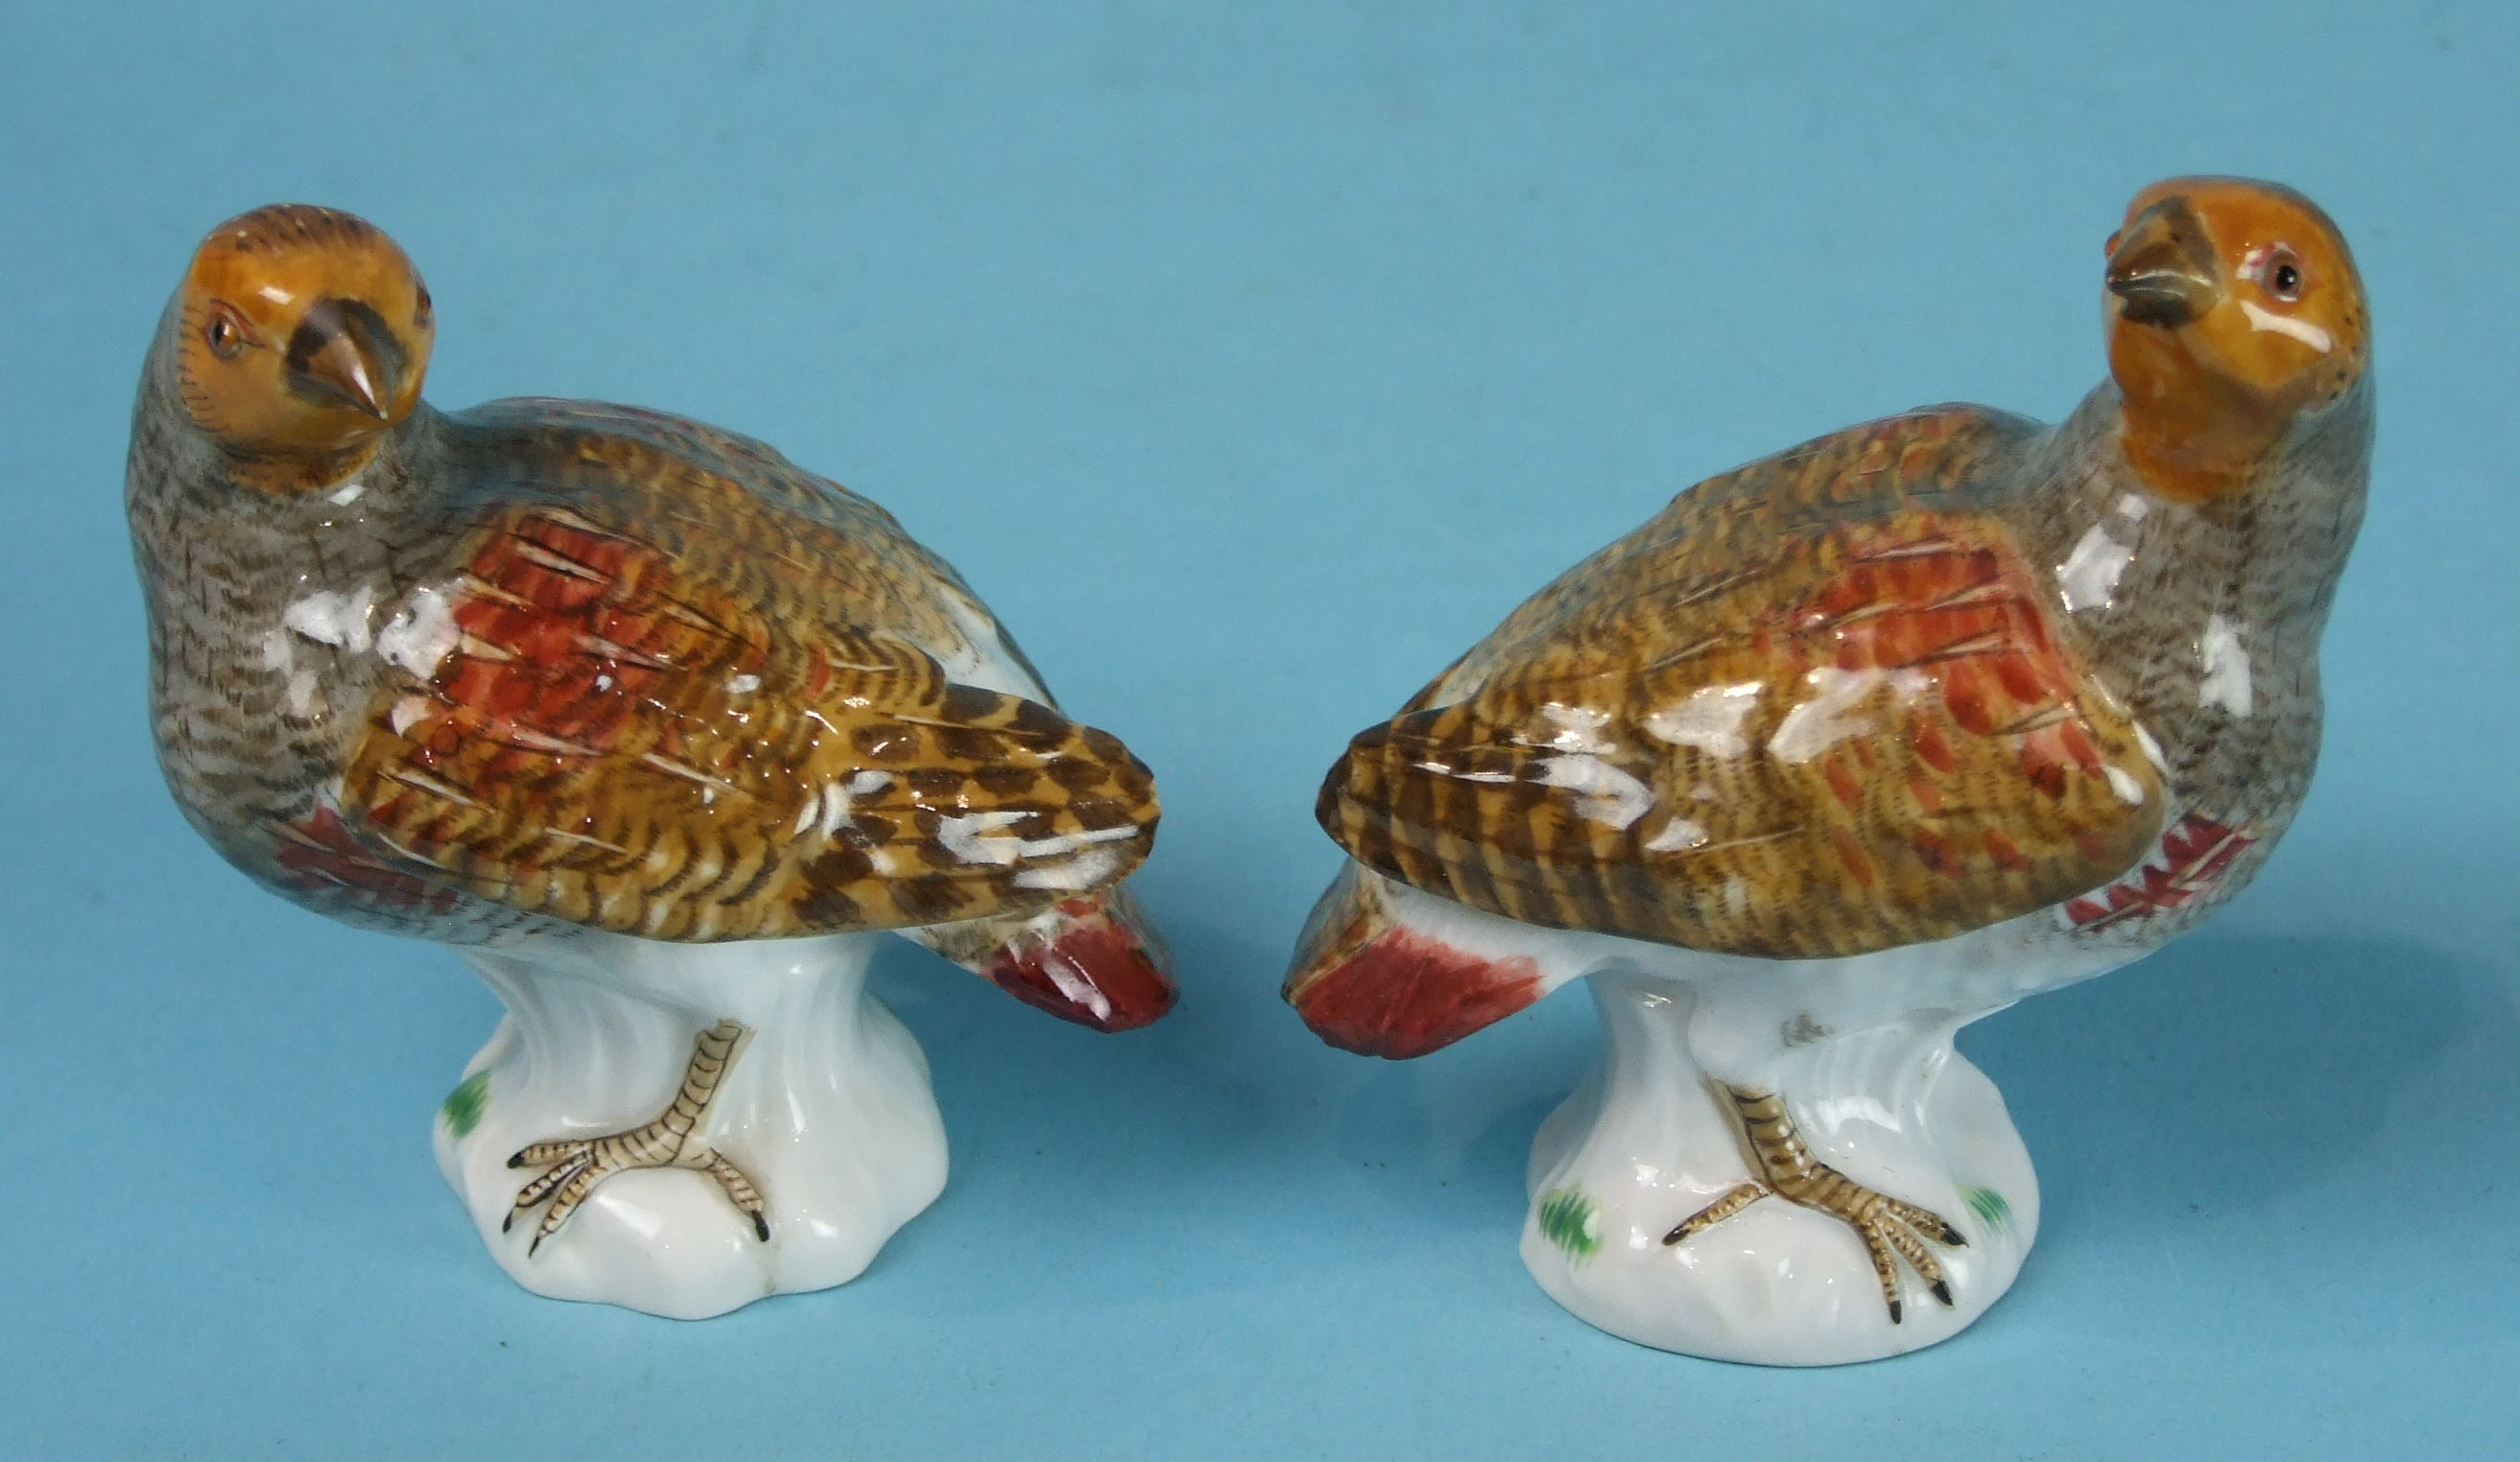 Lot 411 - A pair of small Meissen porcelain models of English Partridges, crossed swords mark, 20th century,